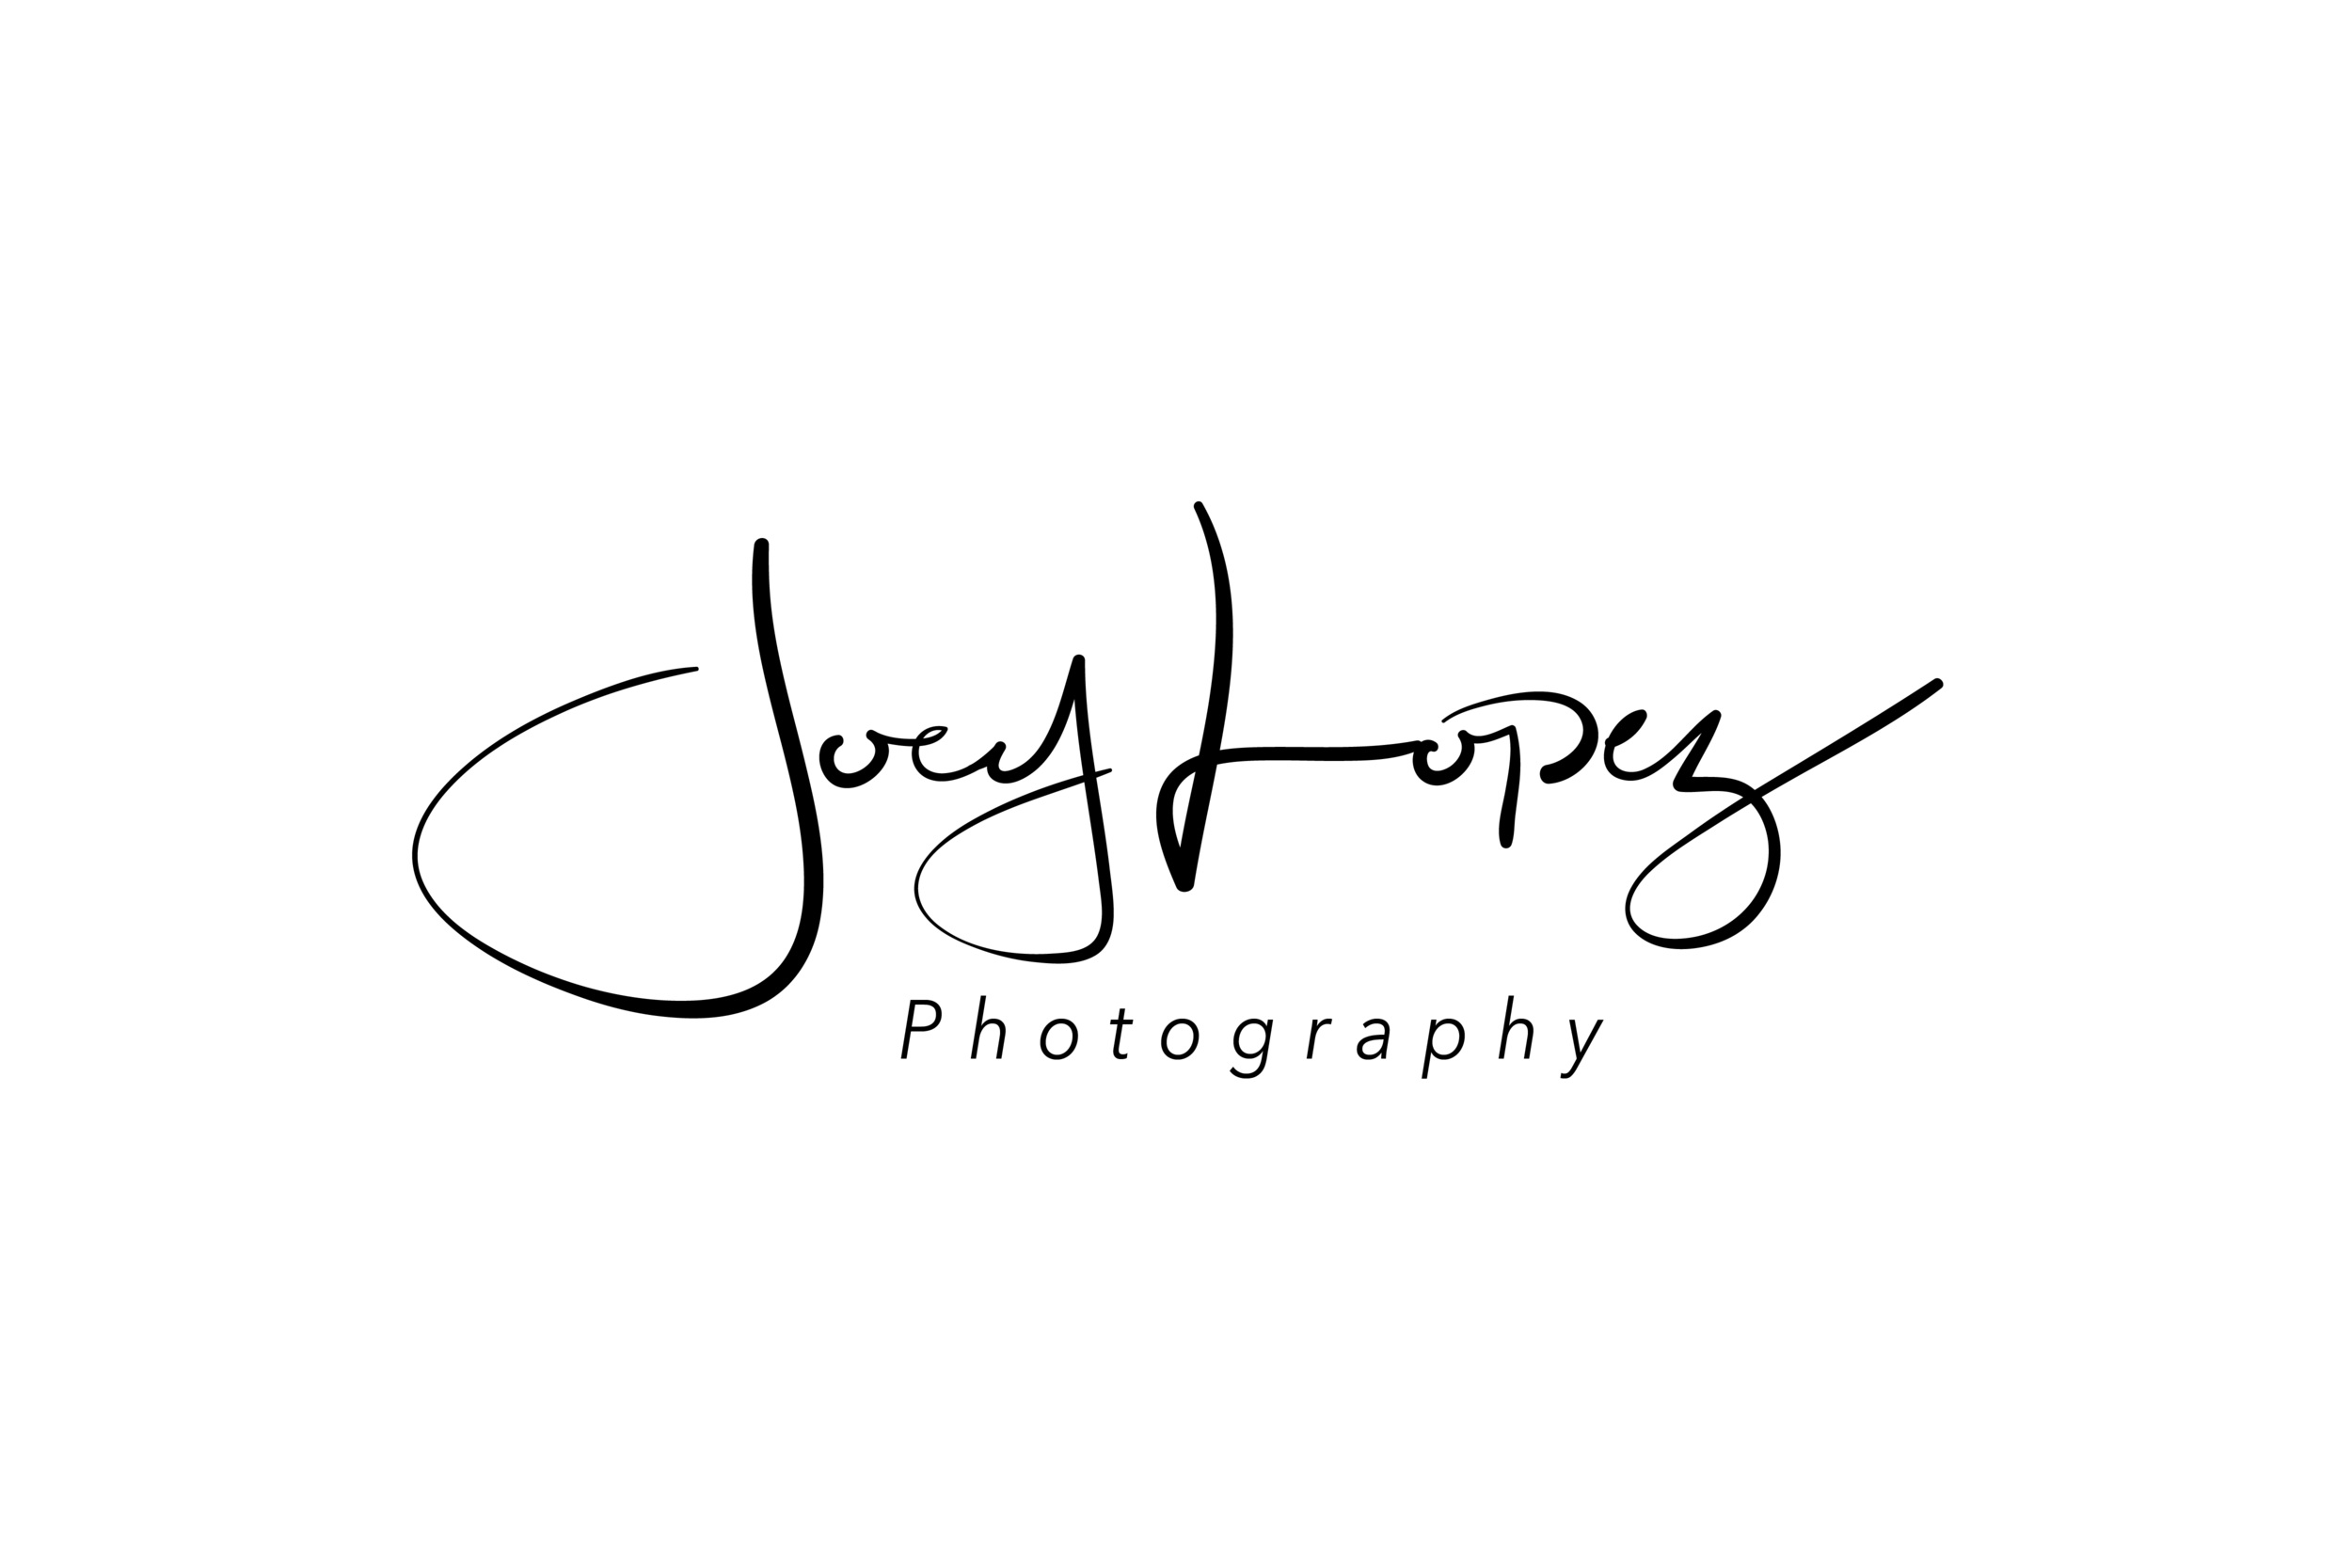 joey lopez photography